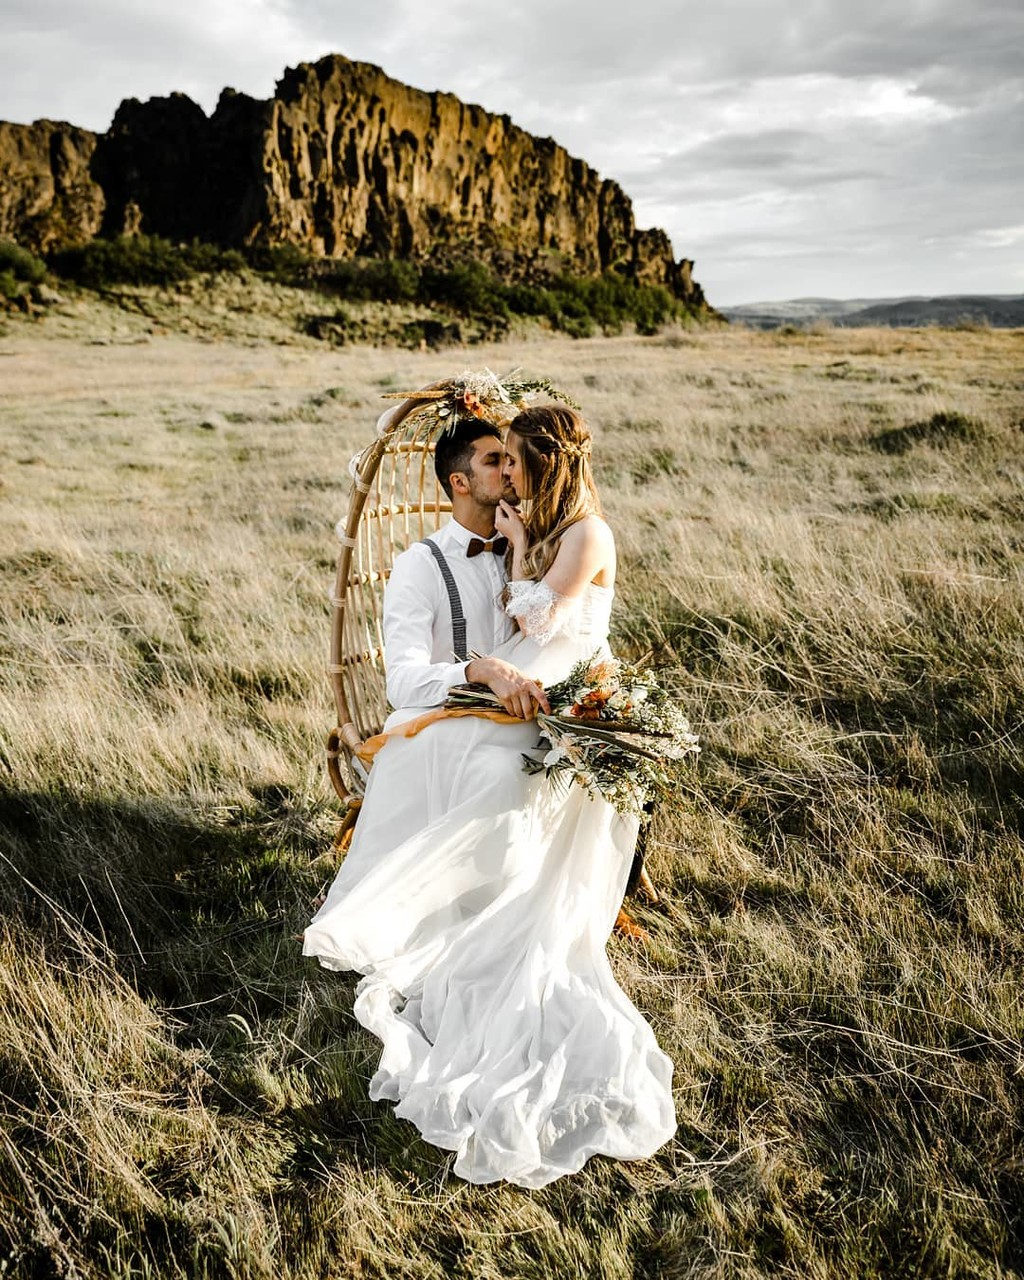 Loving this Columbia River Gorge Elopement & gorgeous Rattan Chair! Literally the most romantic thing ever!